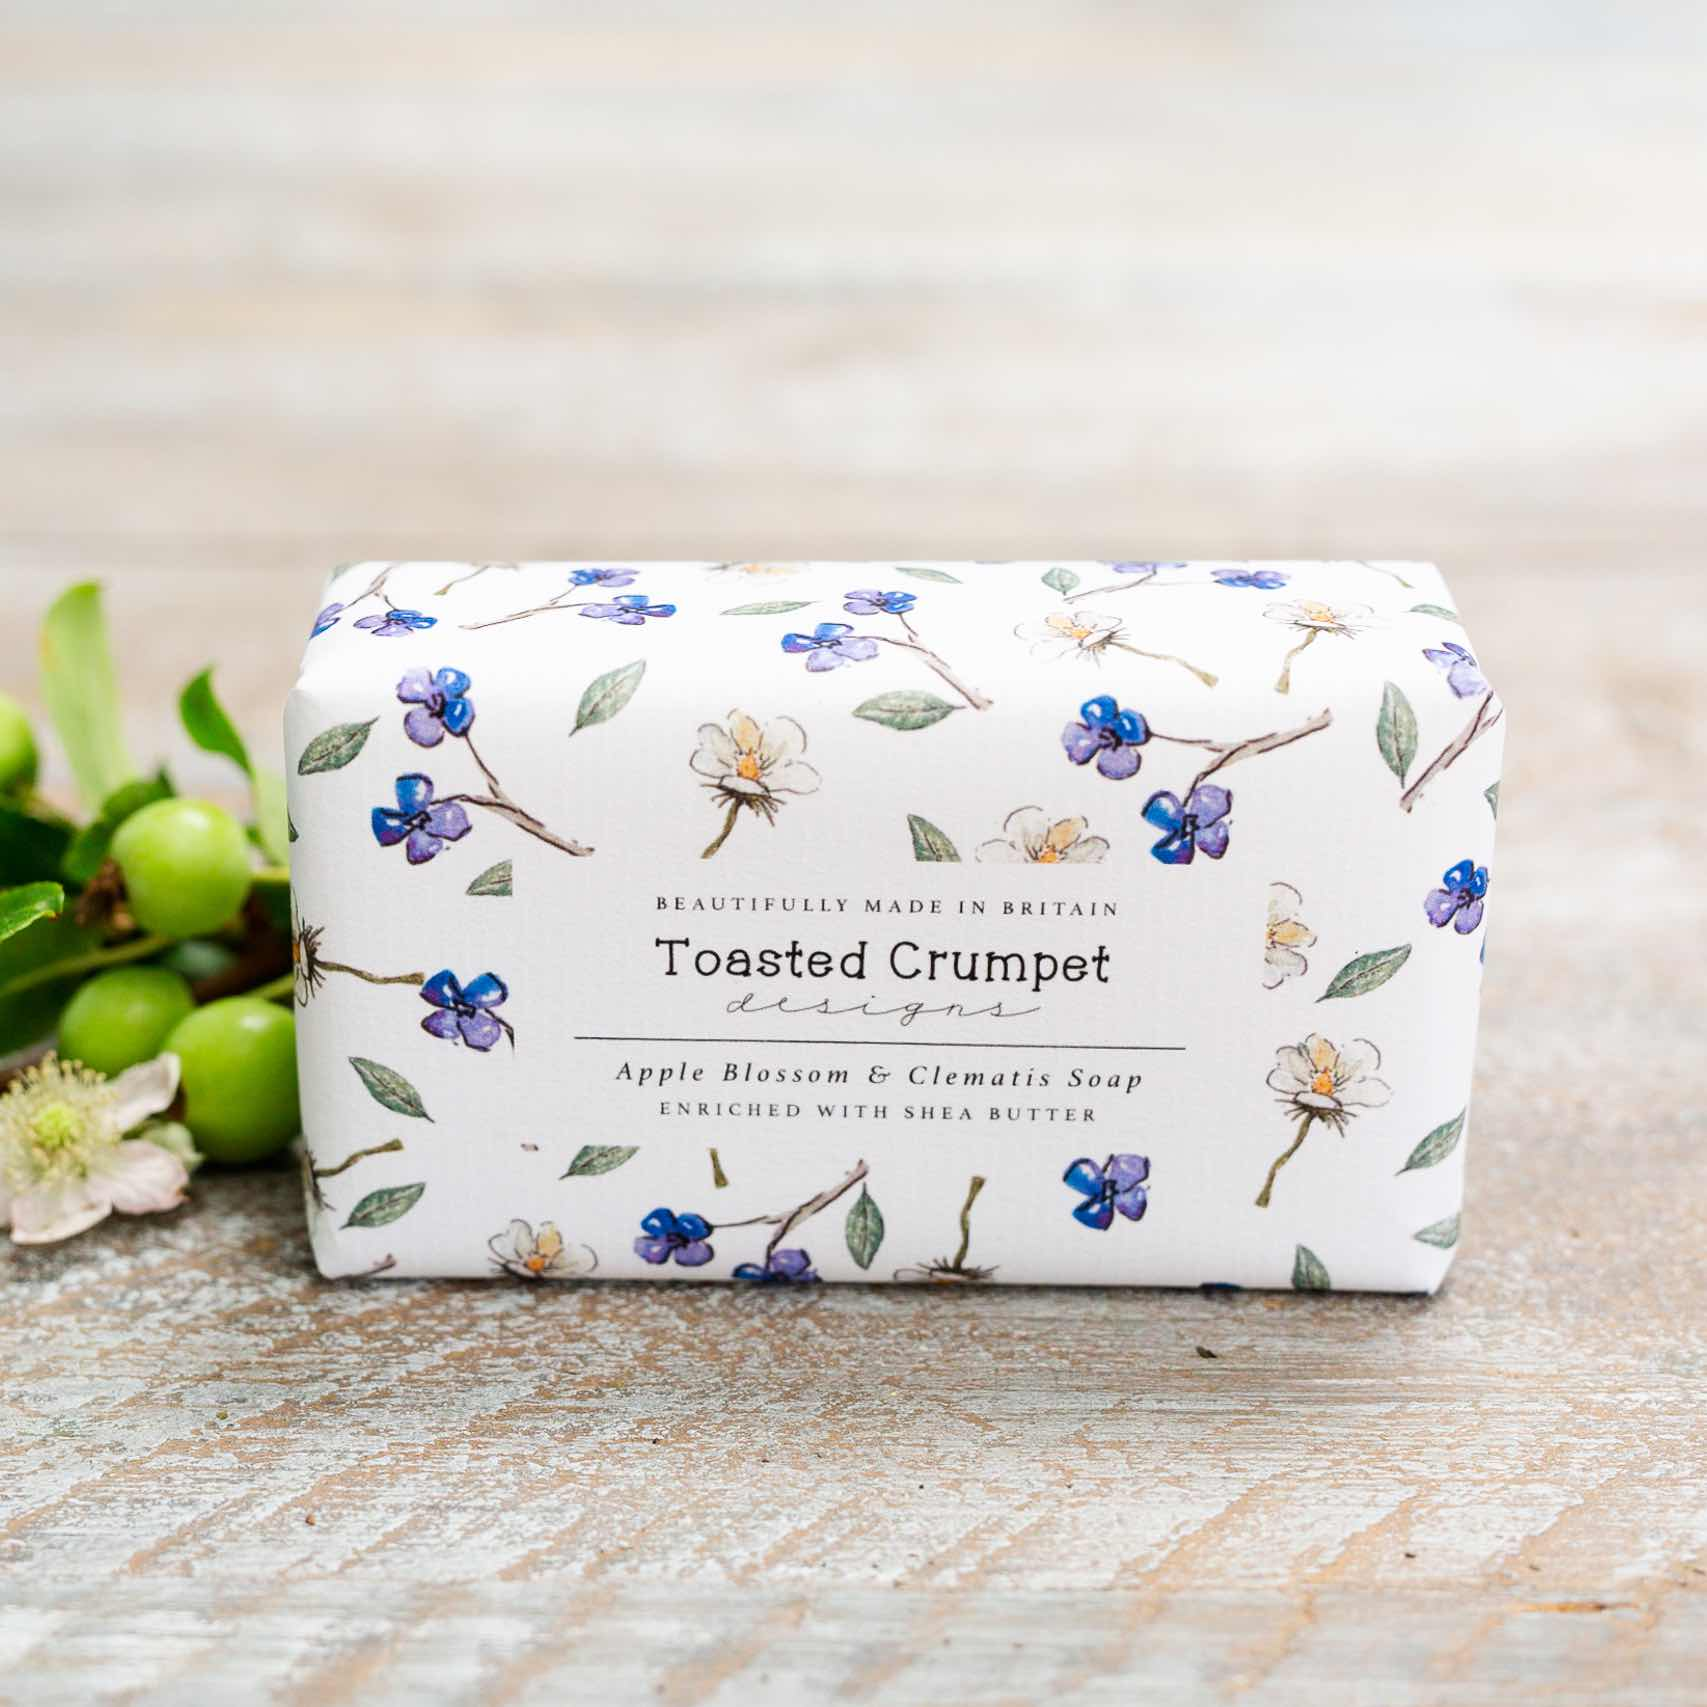 Apple blossom & clematis soap